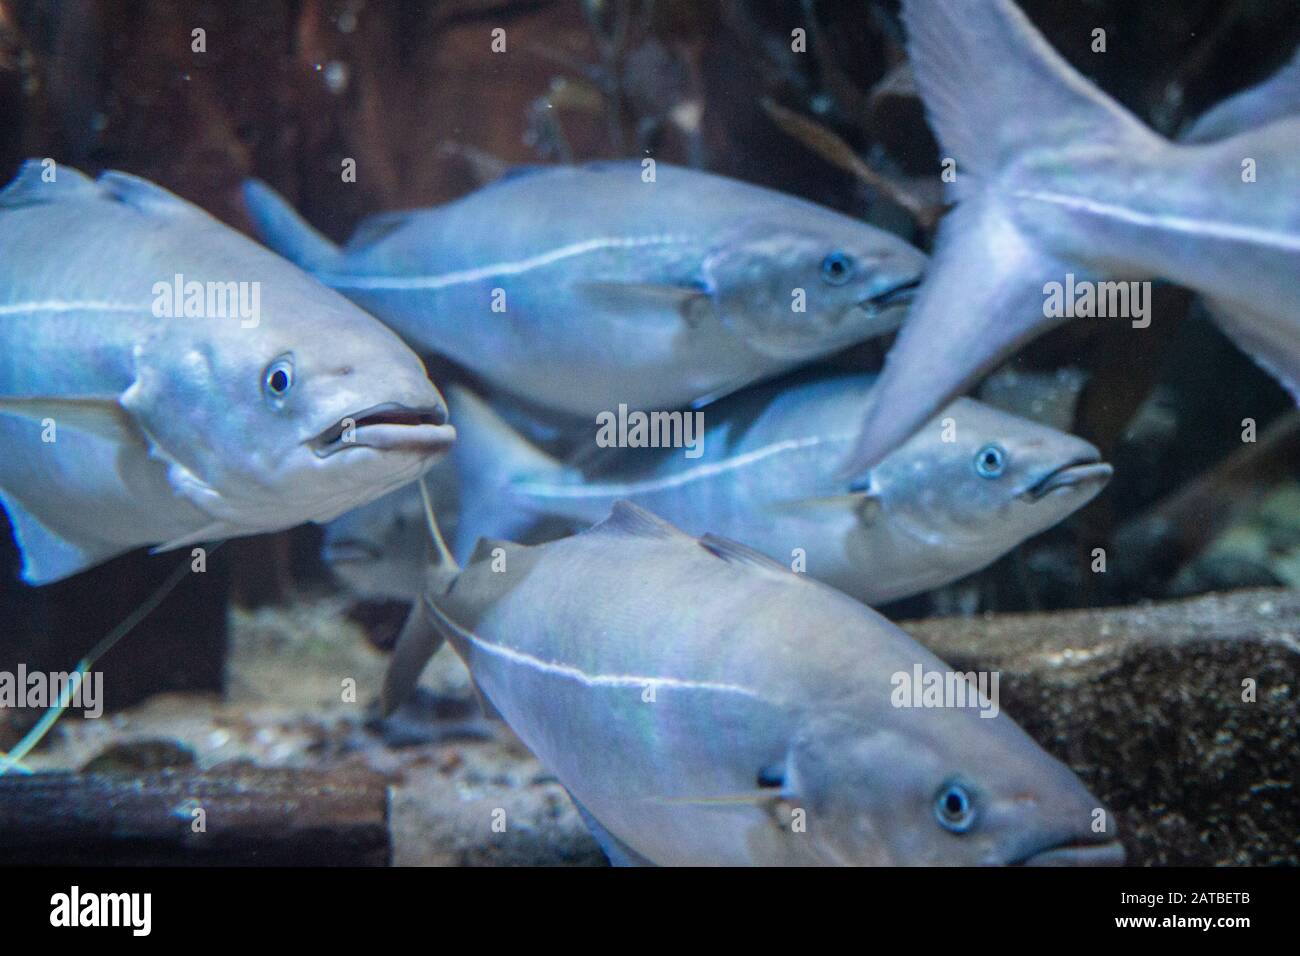 Different Kinds Of Fish From South America And The North Sea Stock Photo Alamy